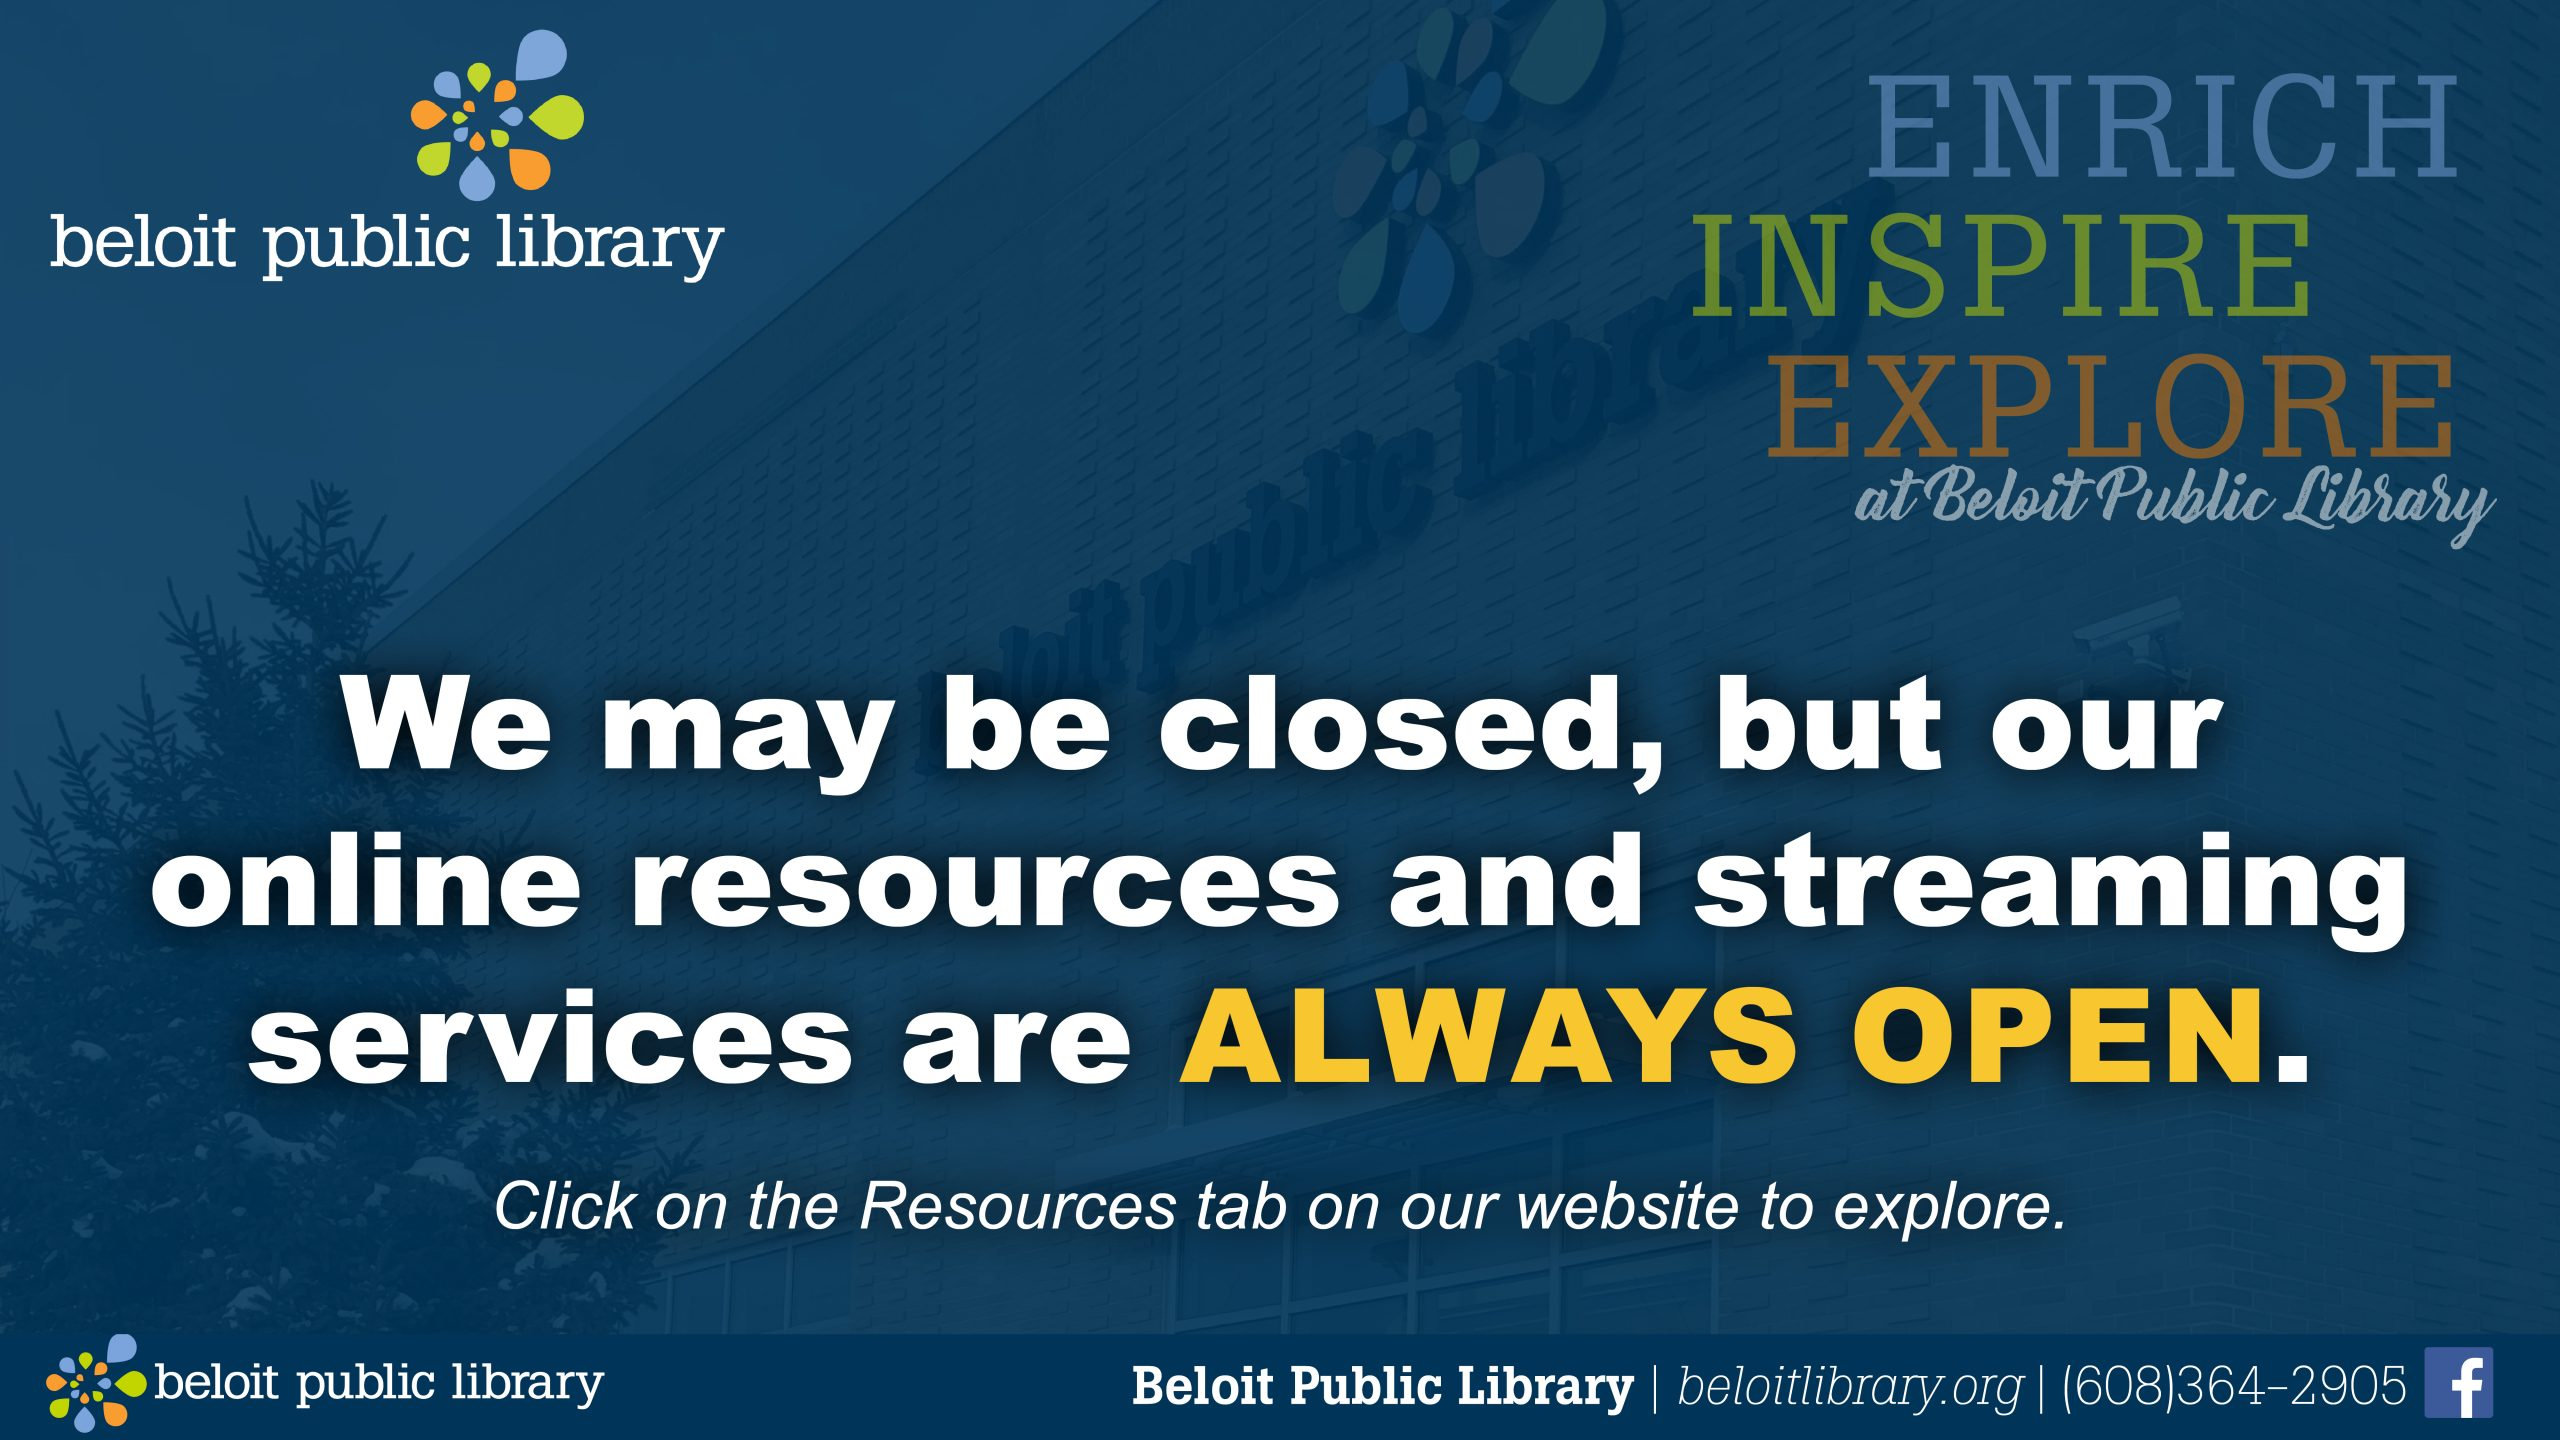 We may be closed, but our online resources and streaming services are always open. Click on the resources tab on our website to explore.